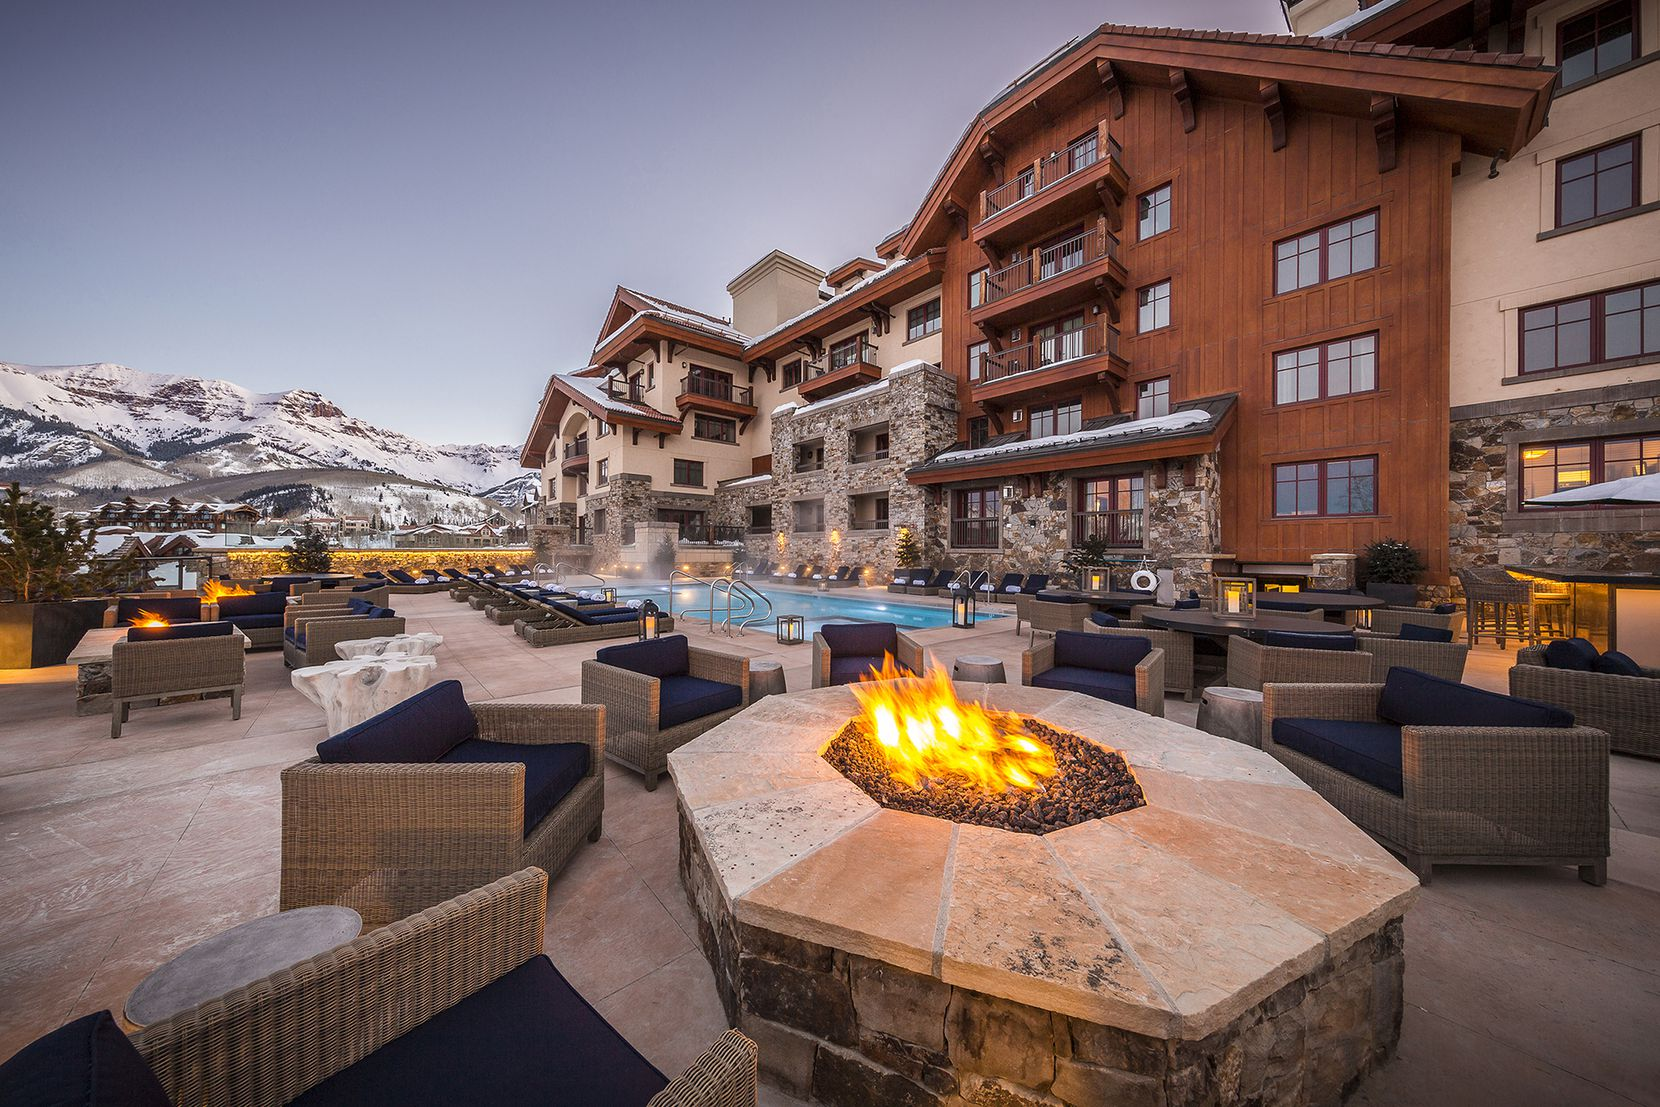 The Madeline Hotel offers fire pits, a pool, an ice rink and more as part of its ski-in, ski-out experience.